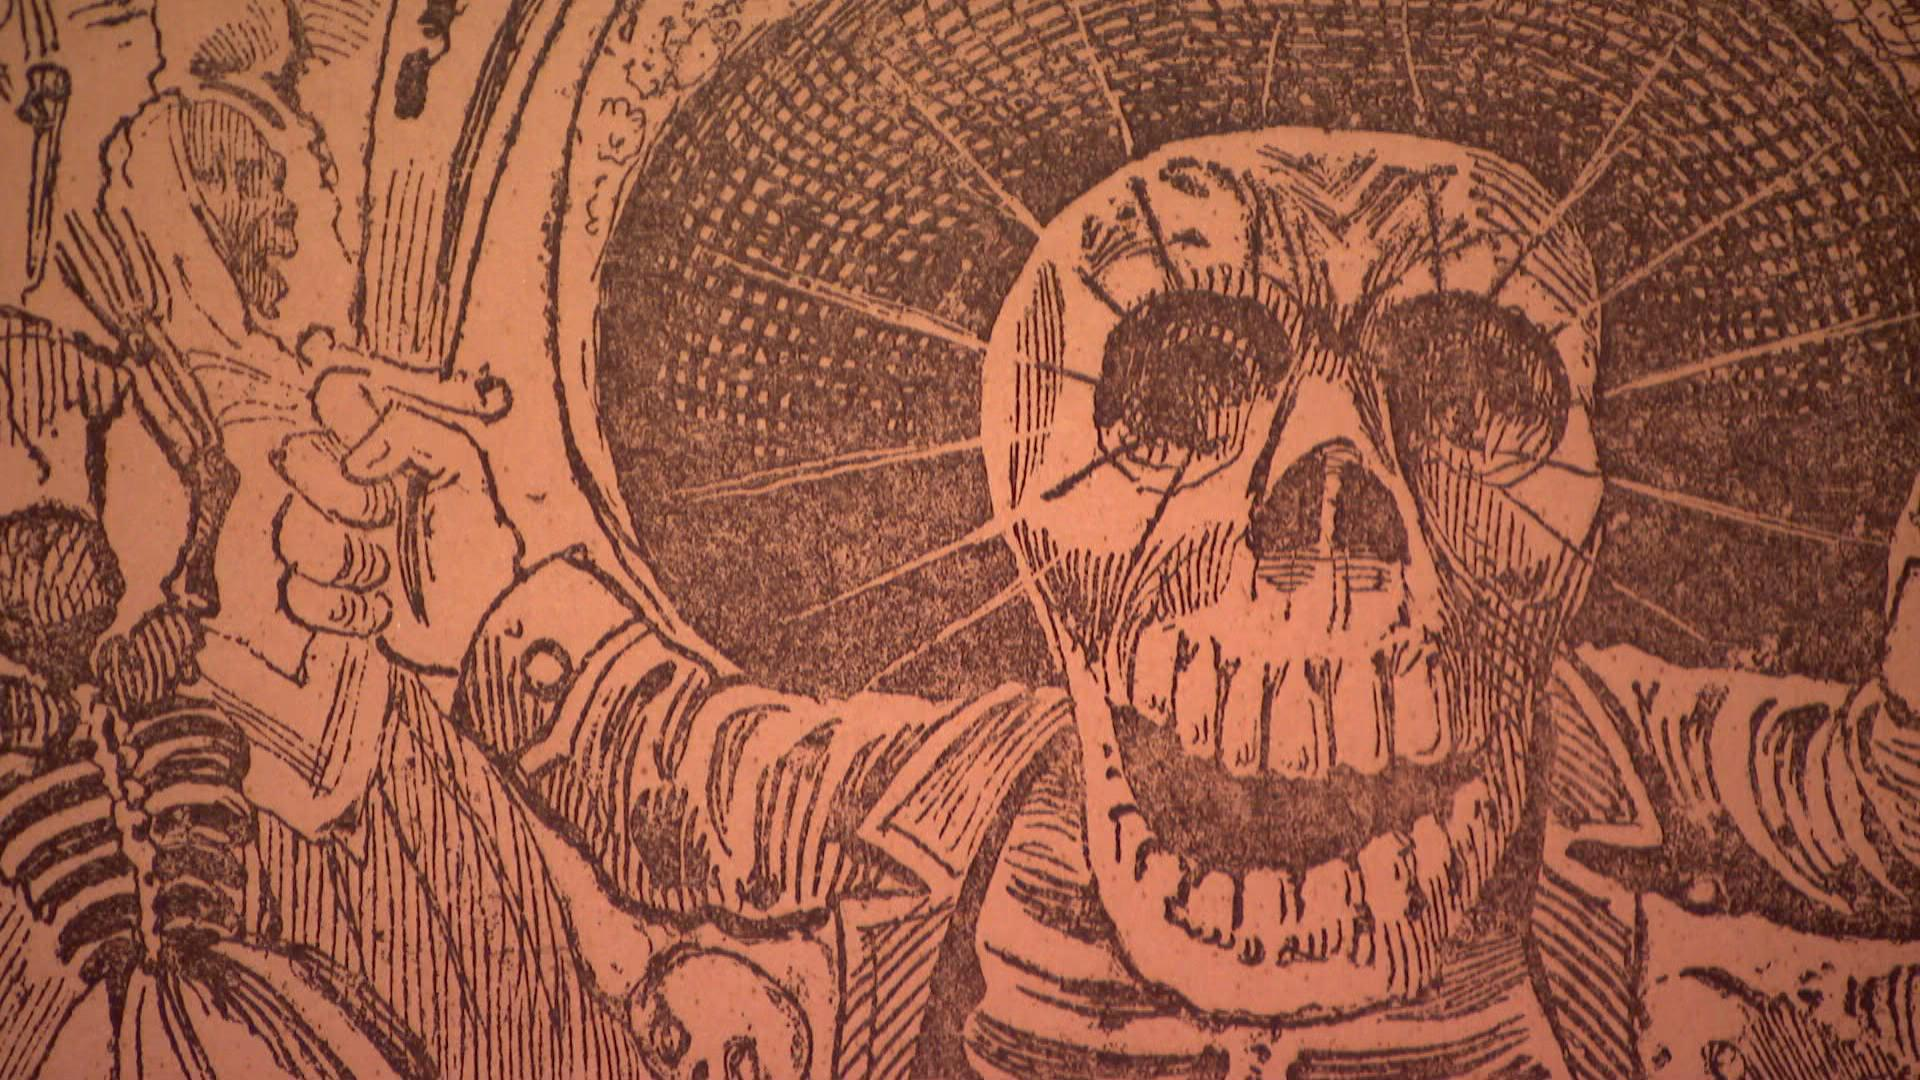 Exhibit Digs Up Satire And Skeletons Of Legendary Printmaker